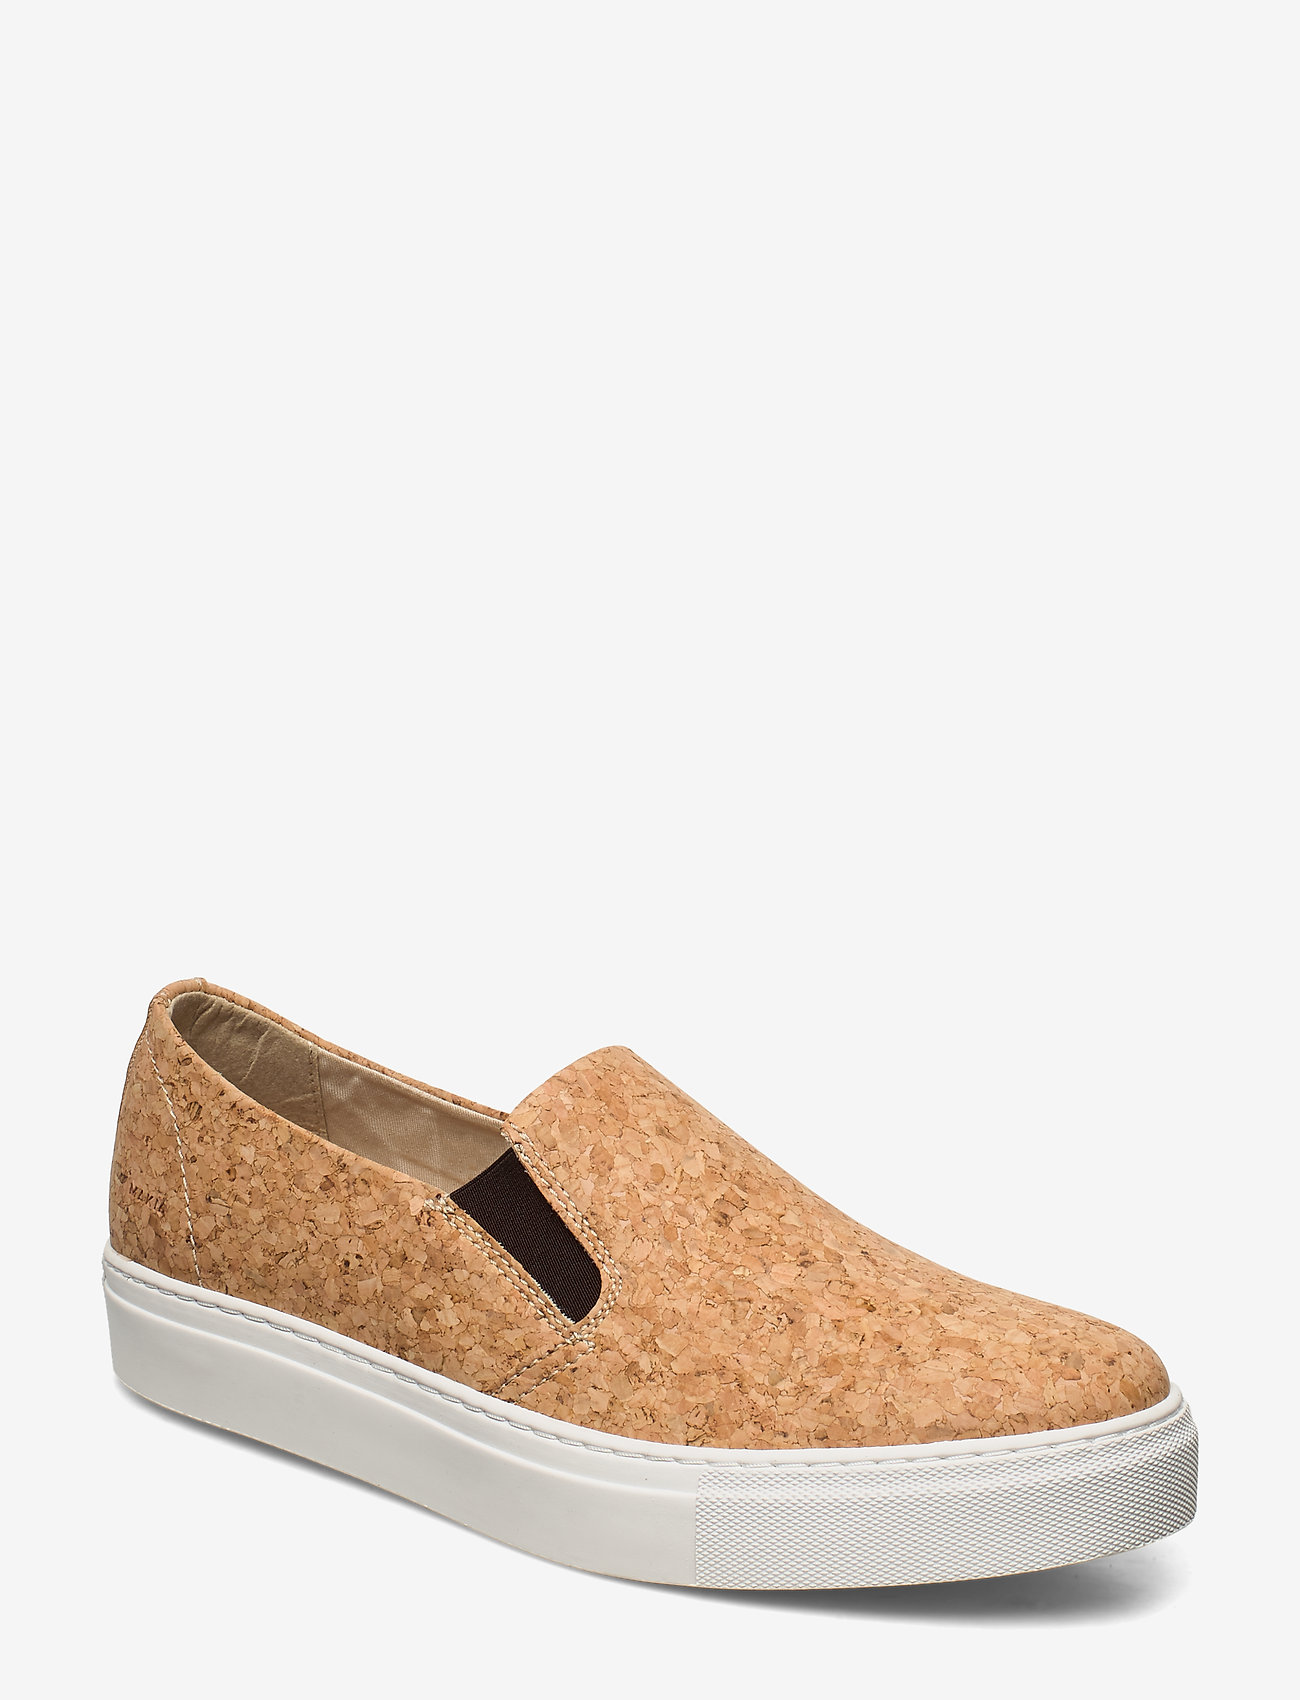 Makia - BOARDWALK - baskets slip-ons - cork - 0